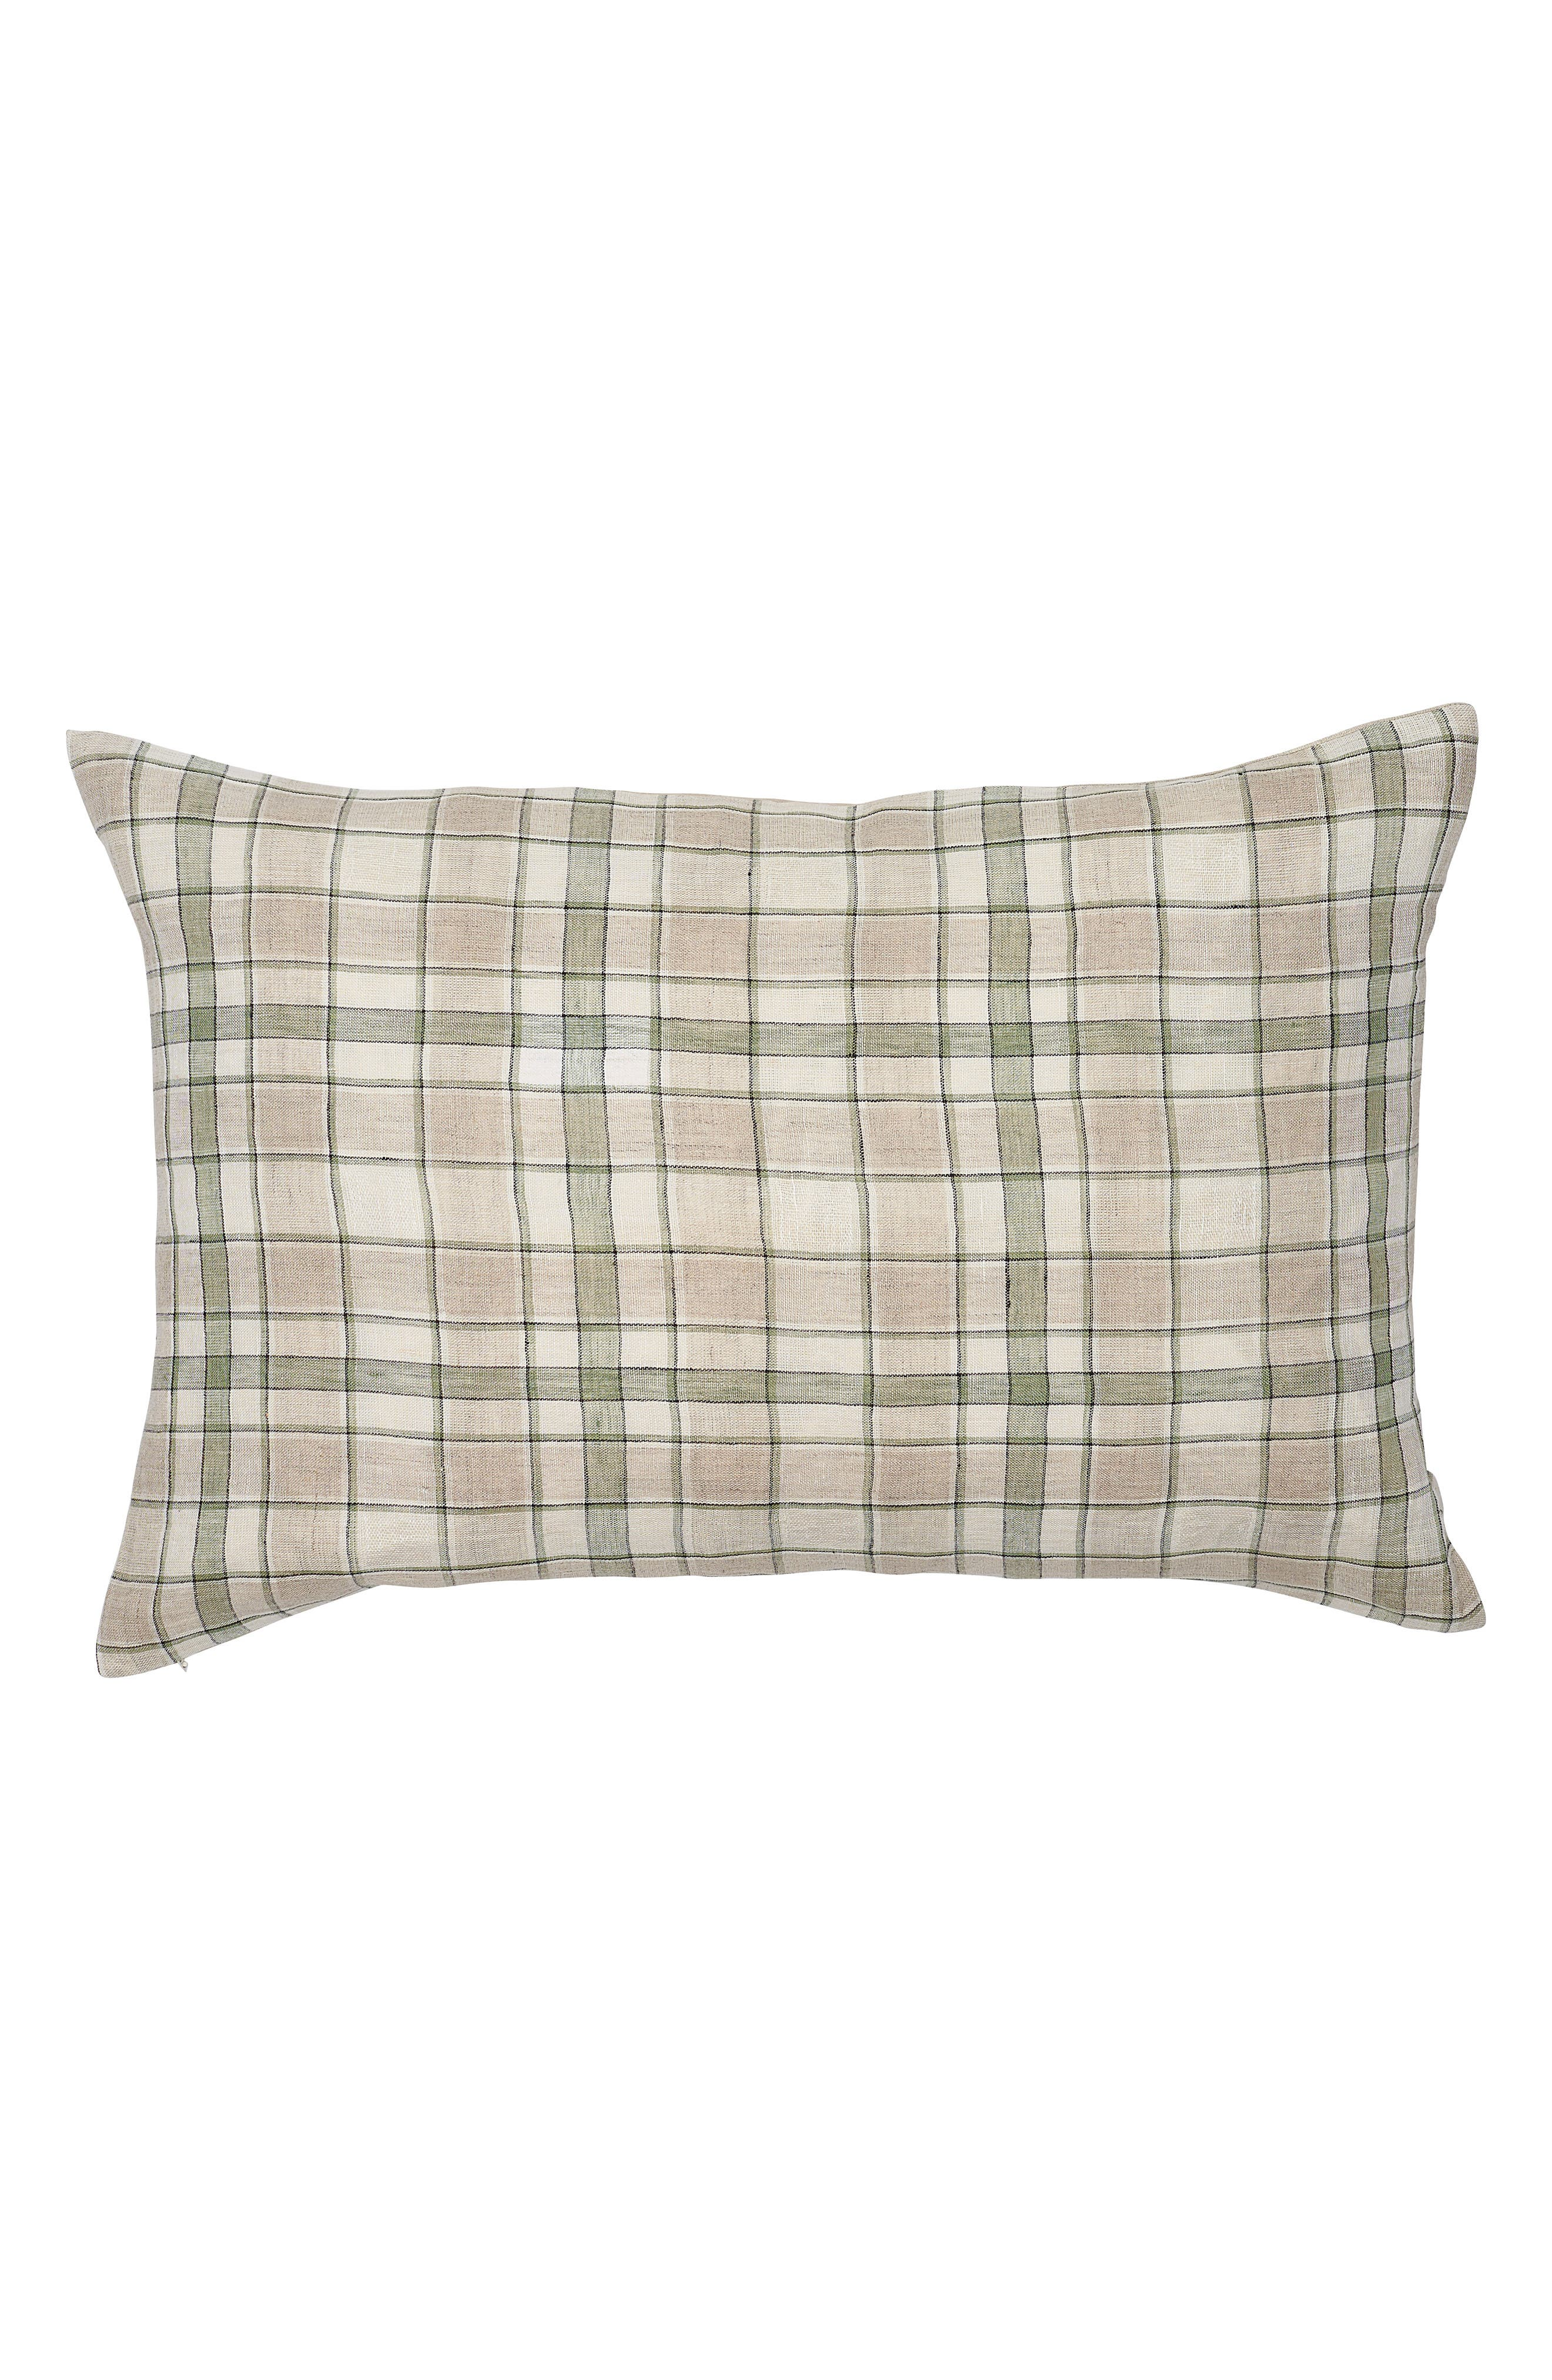 EADIE LIFESTYLE, Caddy Scatter Accent Pillow, Main thumbnail 1, color, SAGE MULTI